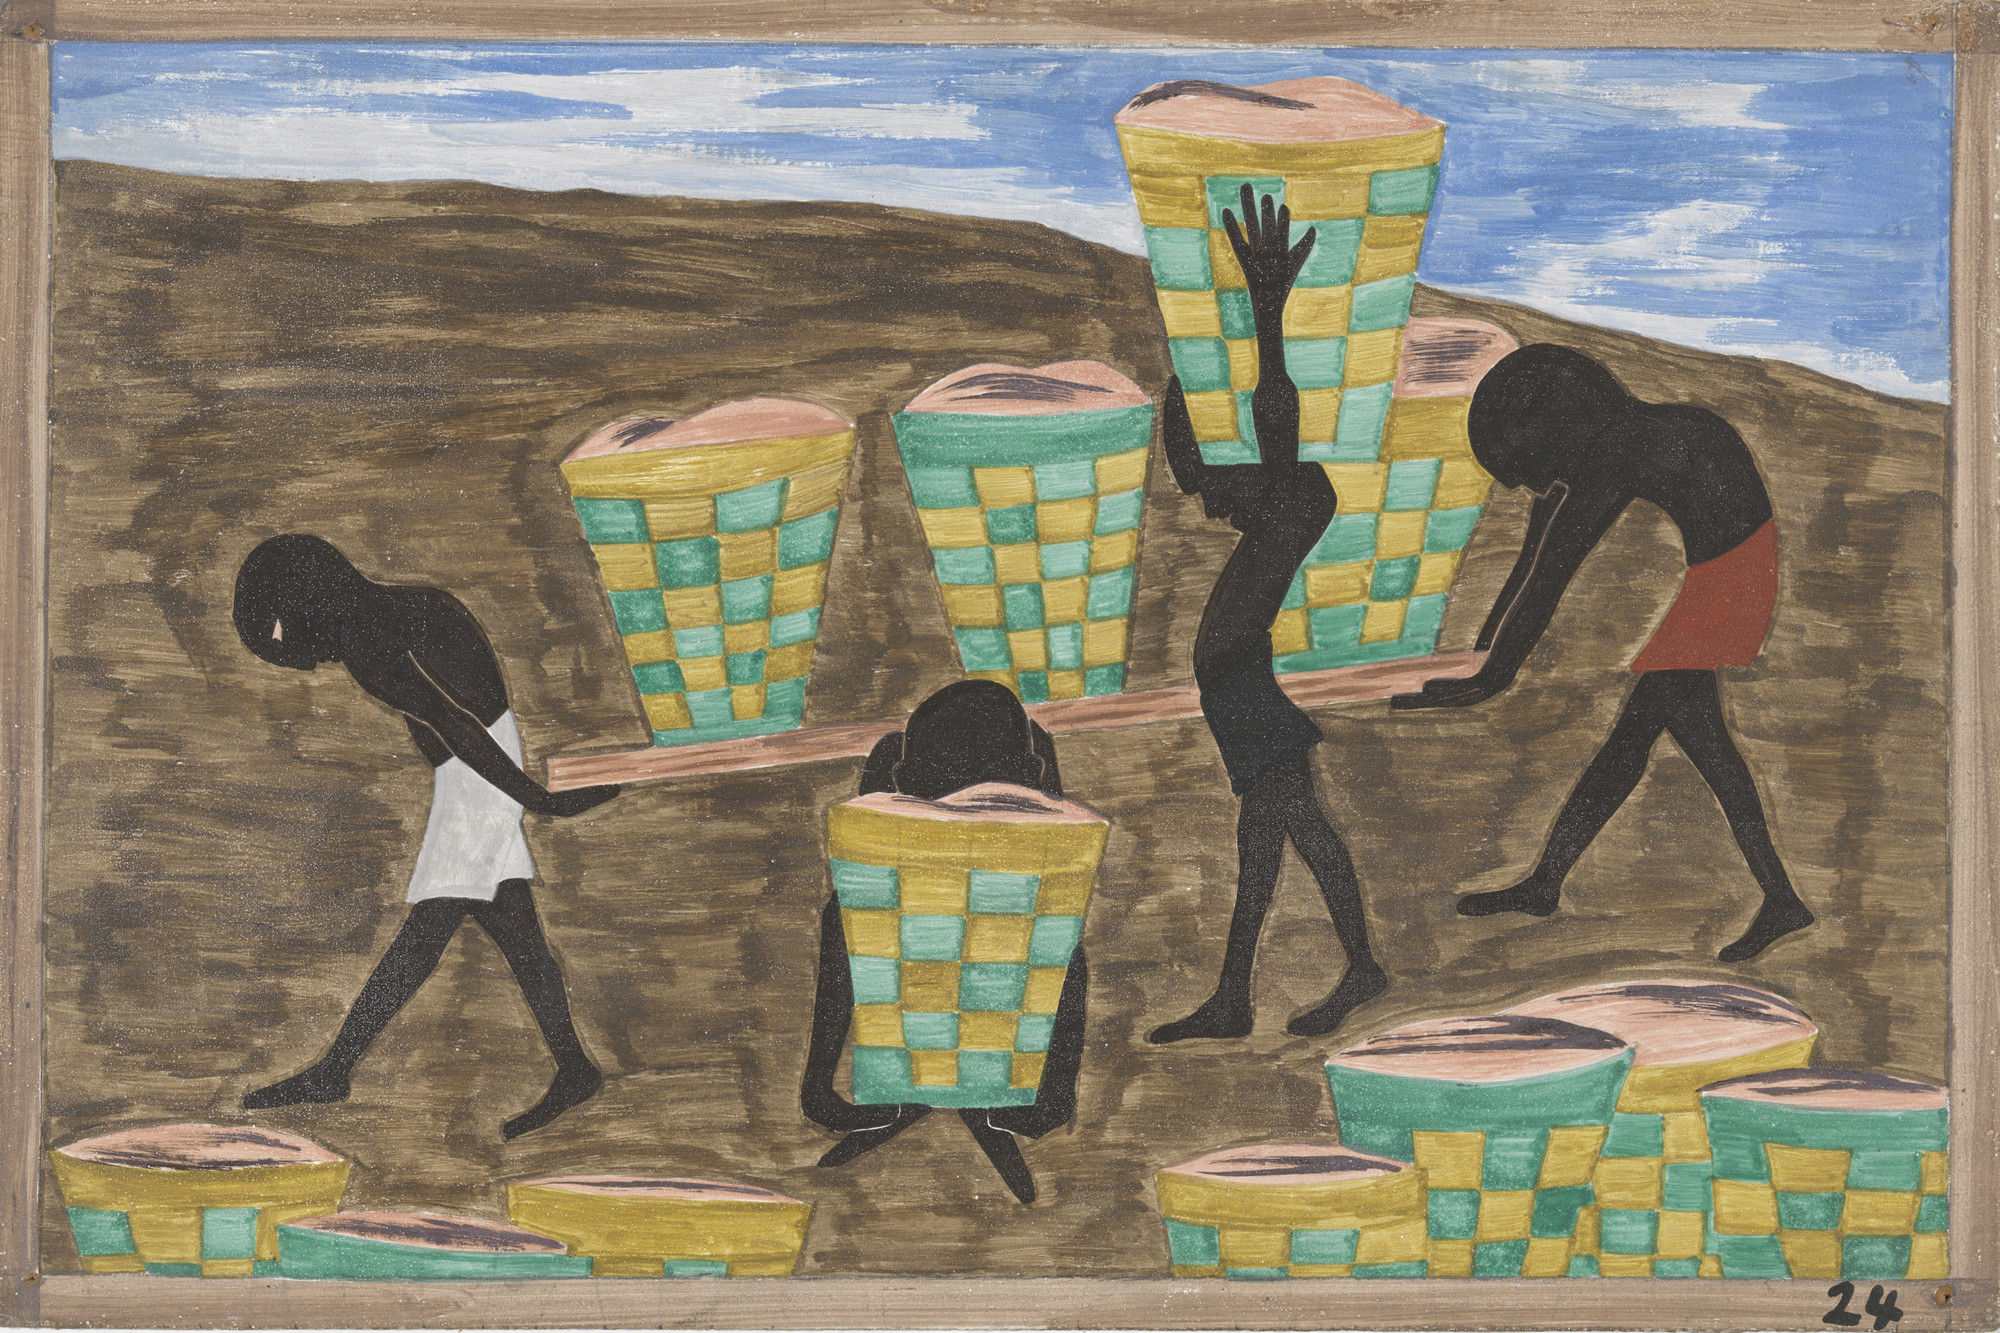 Jacob Lawrence. Child labor and a lack of education was one of the other reasons for people wishing to leave their homes. 1940-41